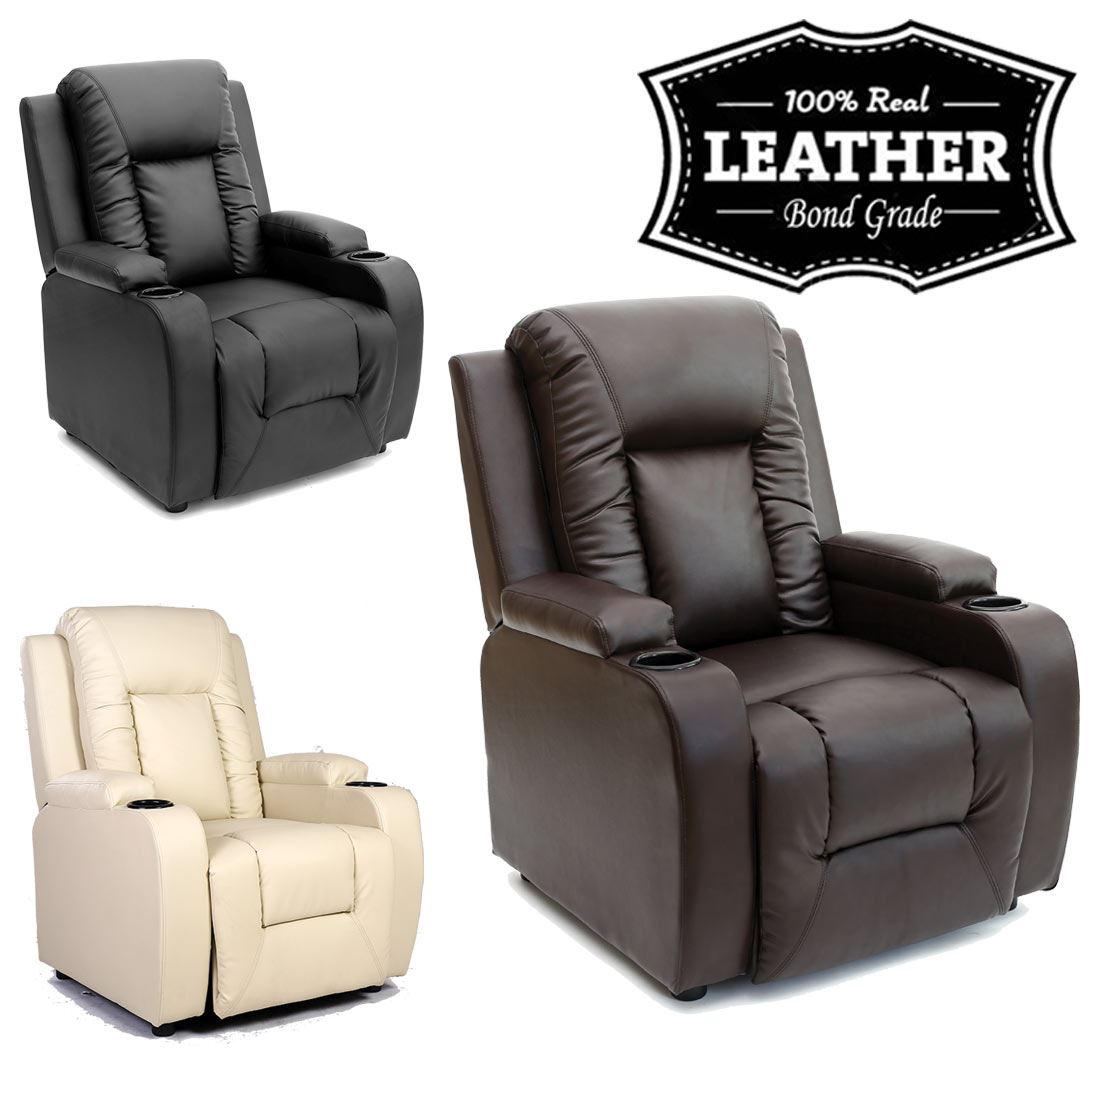 angled furniture recliner view silverado open navasota leather molasses reclined gallery